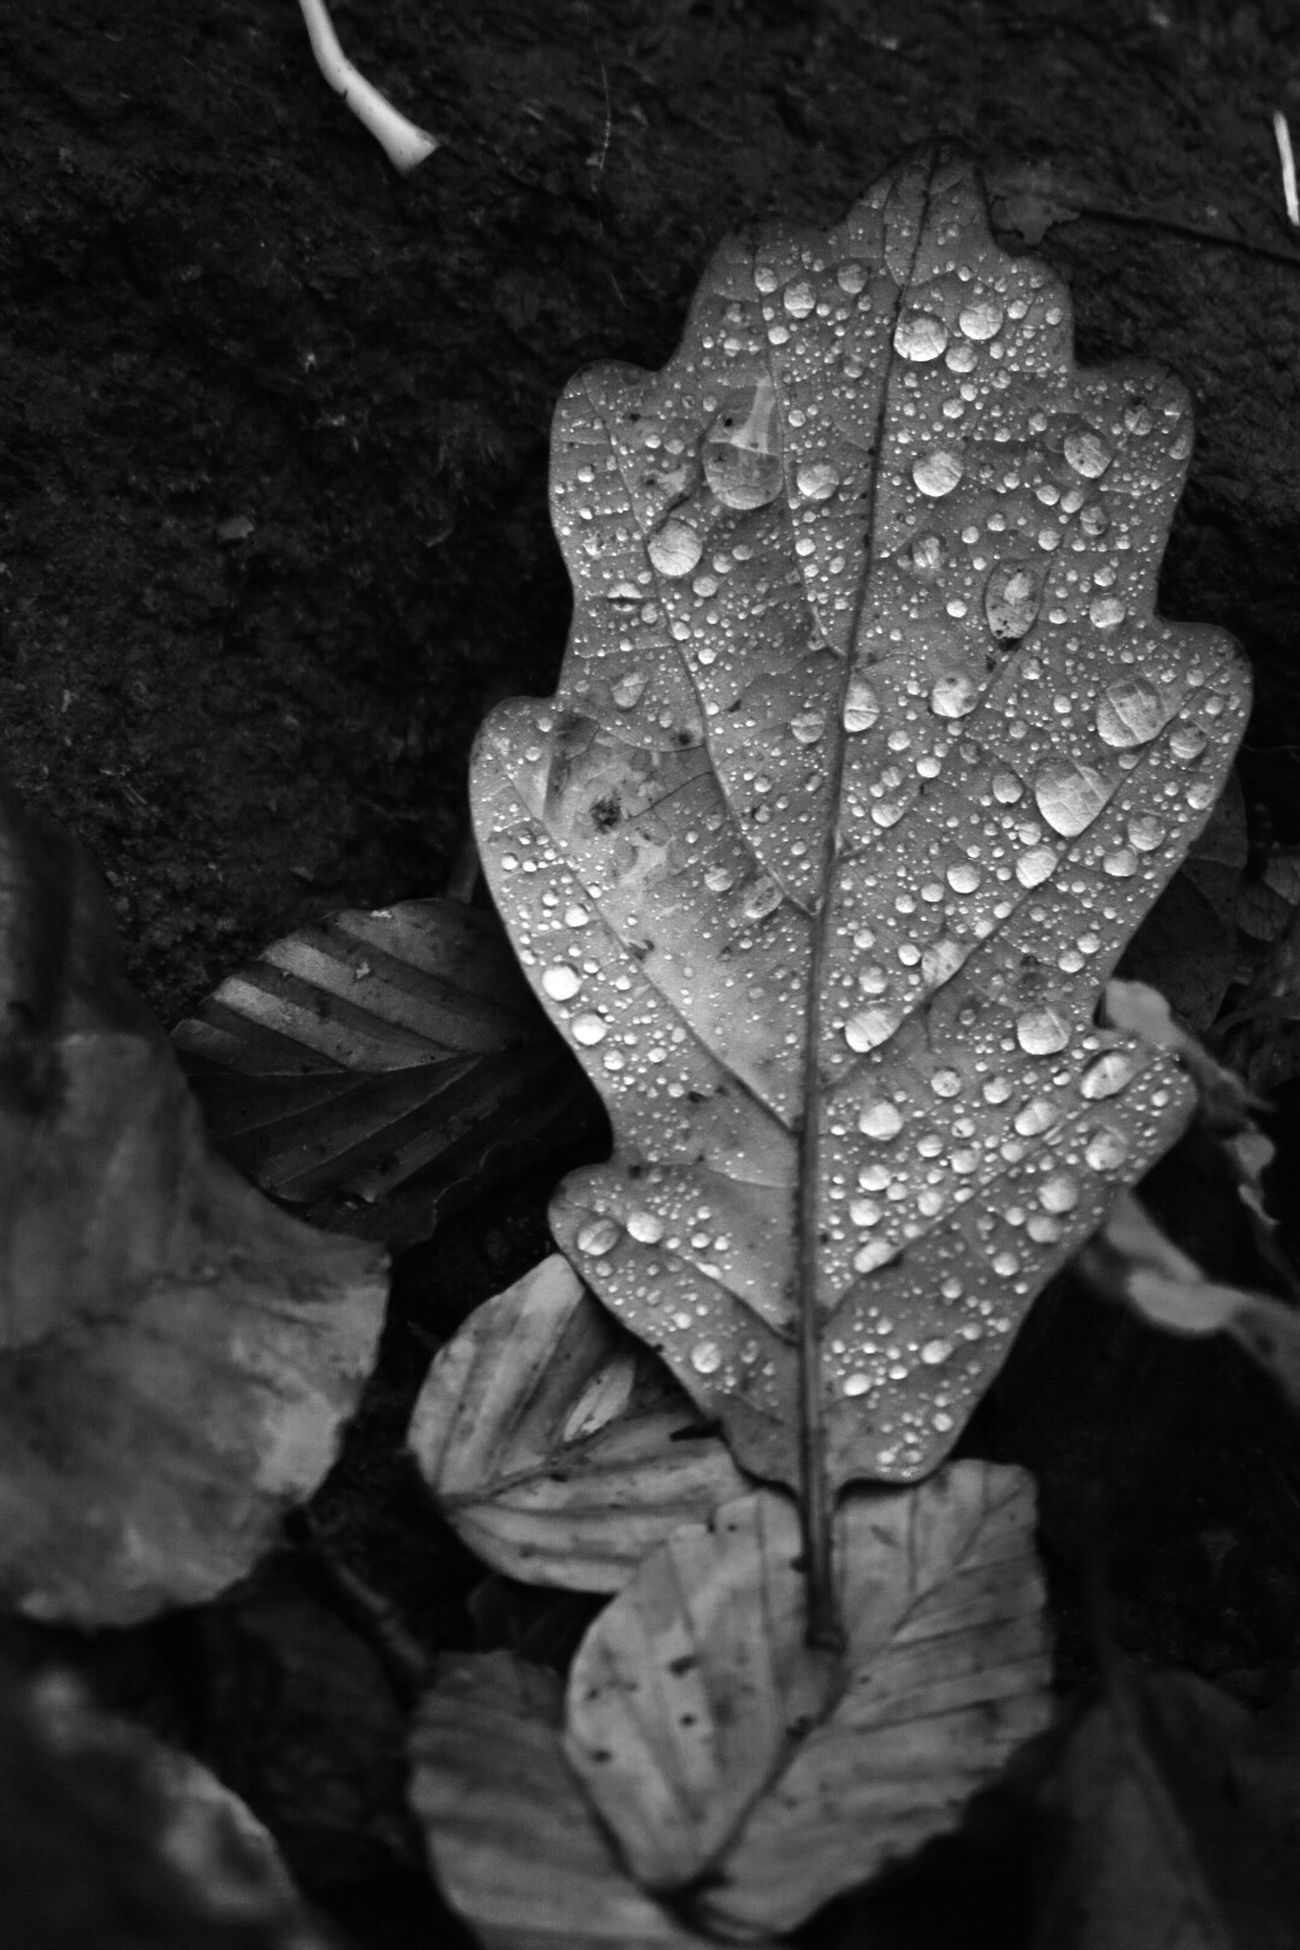 Nikonphotography Leaf Nature Wet Close-up Leaf Vein Drop Water Maple No People Fragility Rain Dew Outdoors Beauty In Nature Maple Leaf RainDrop Day Freshness Nikon